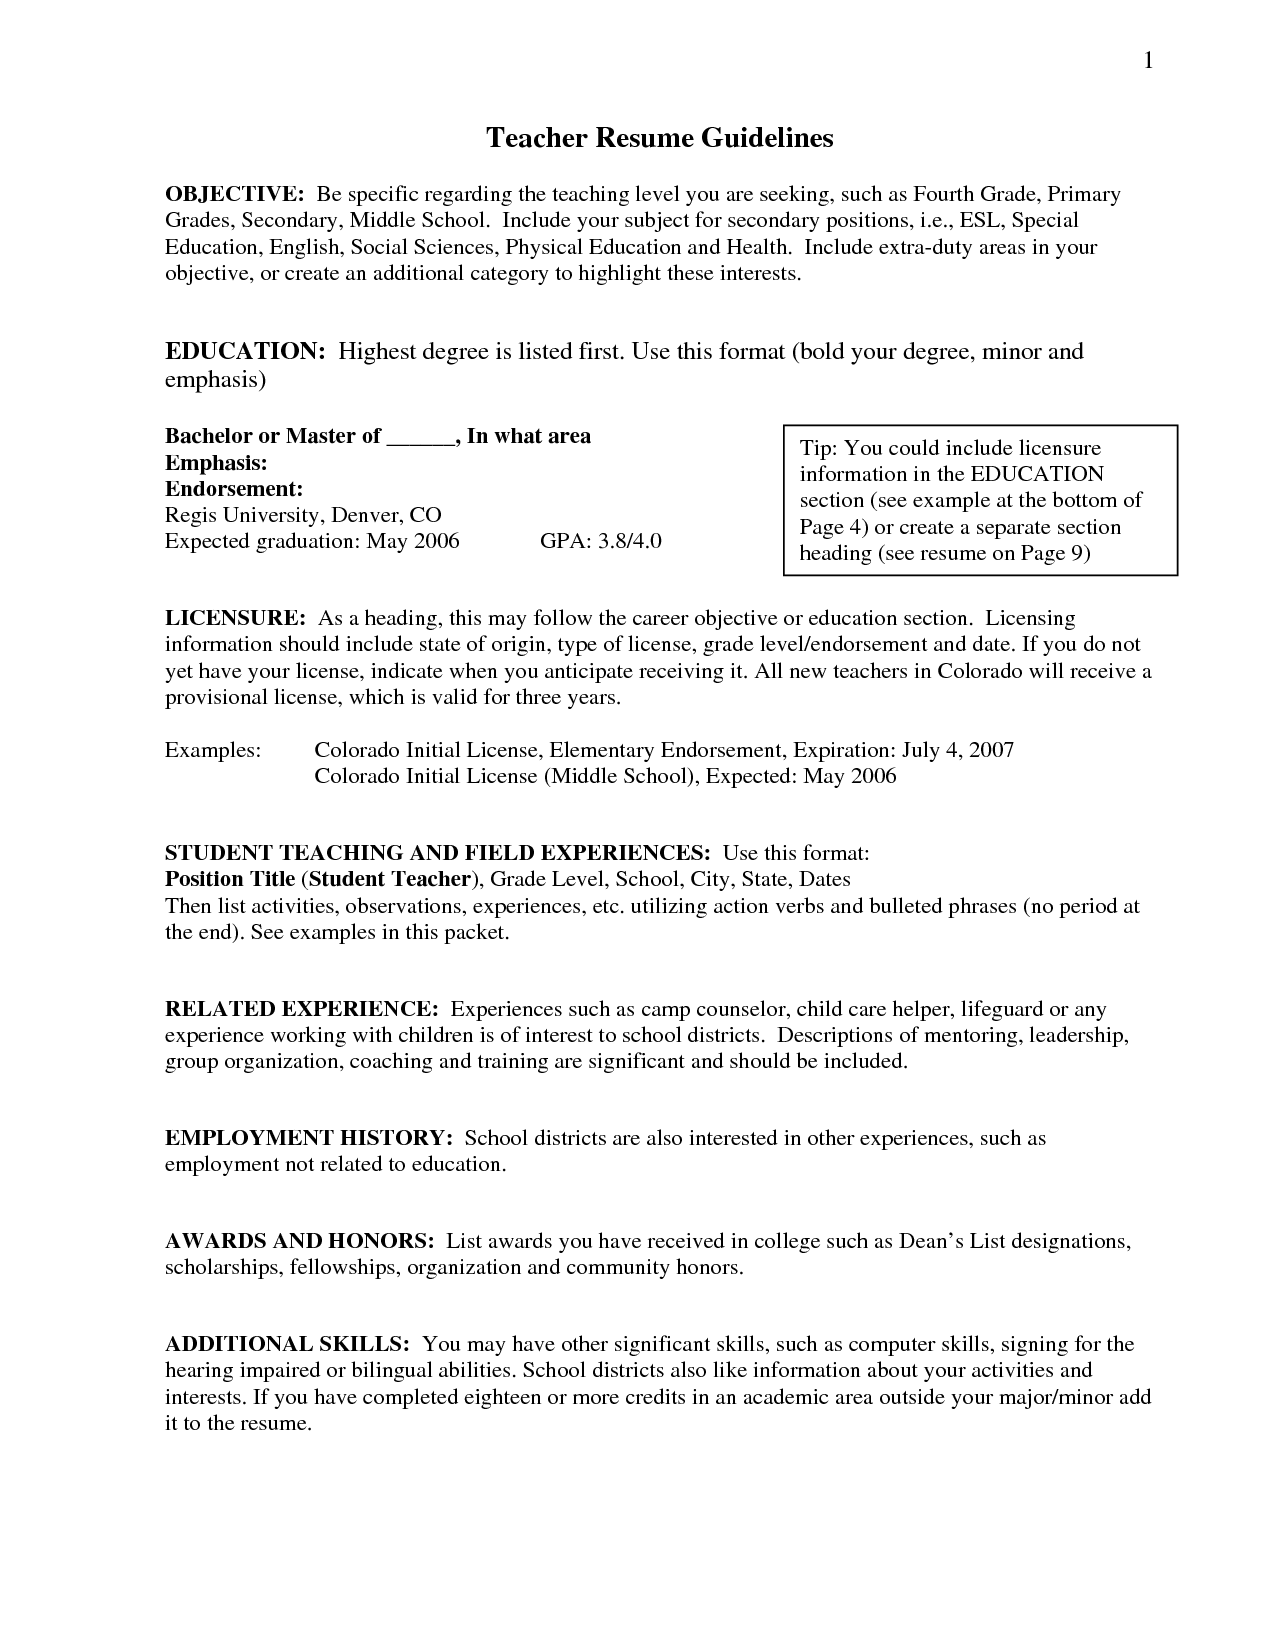 Resume Objective Statement For Teacher   Http://www.resumecareer.info/  Resume Without Objective